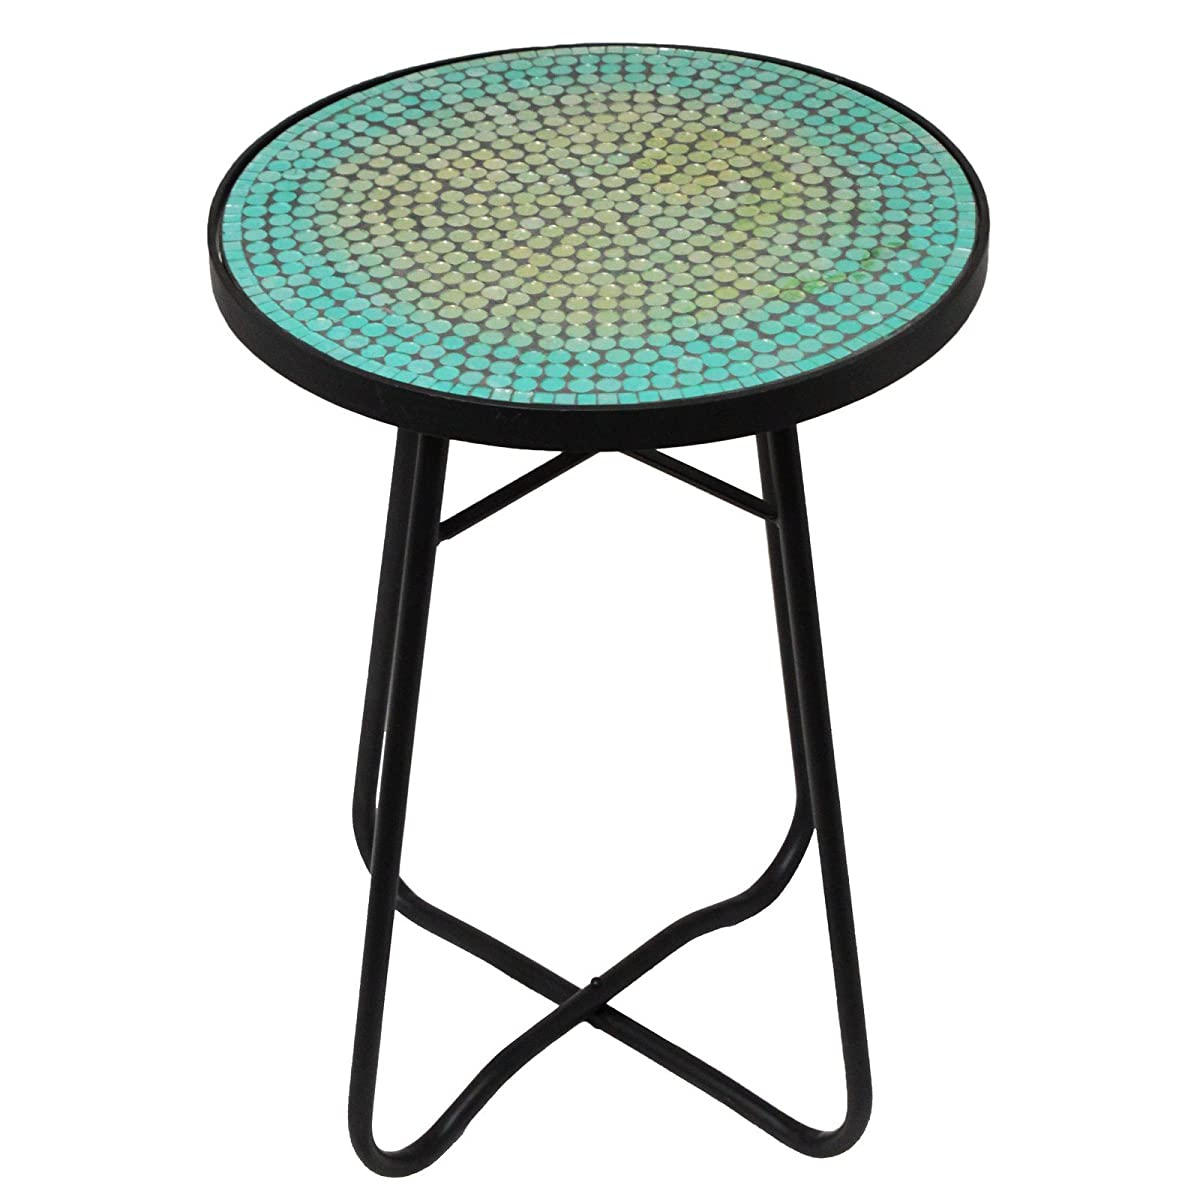 Urban Designs Mosaic Turquoise Round Accent Table